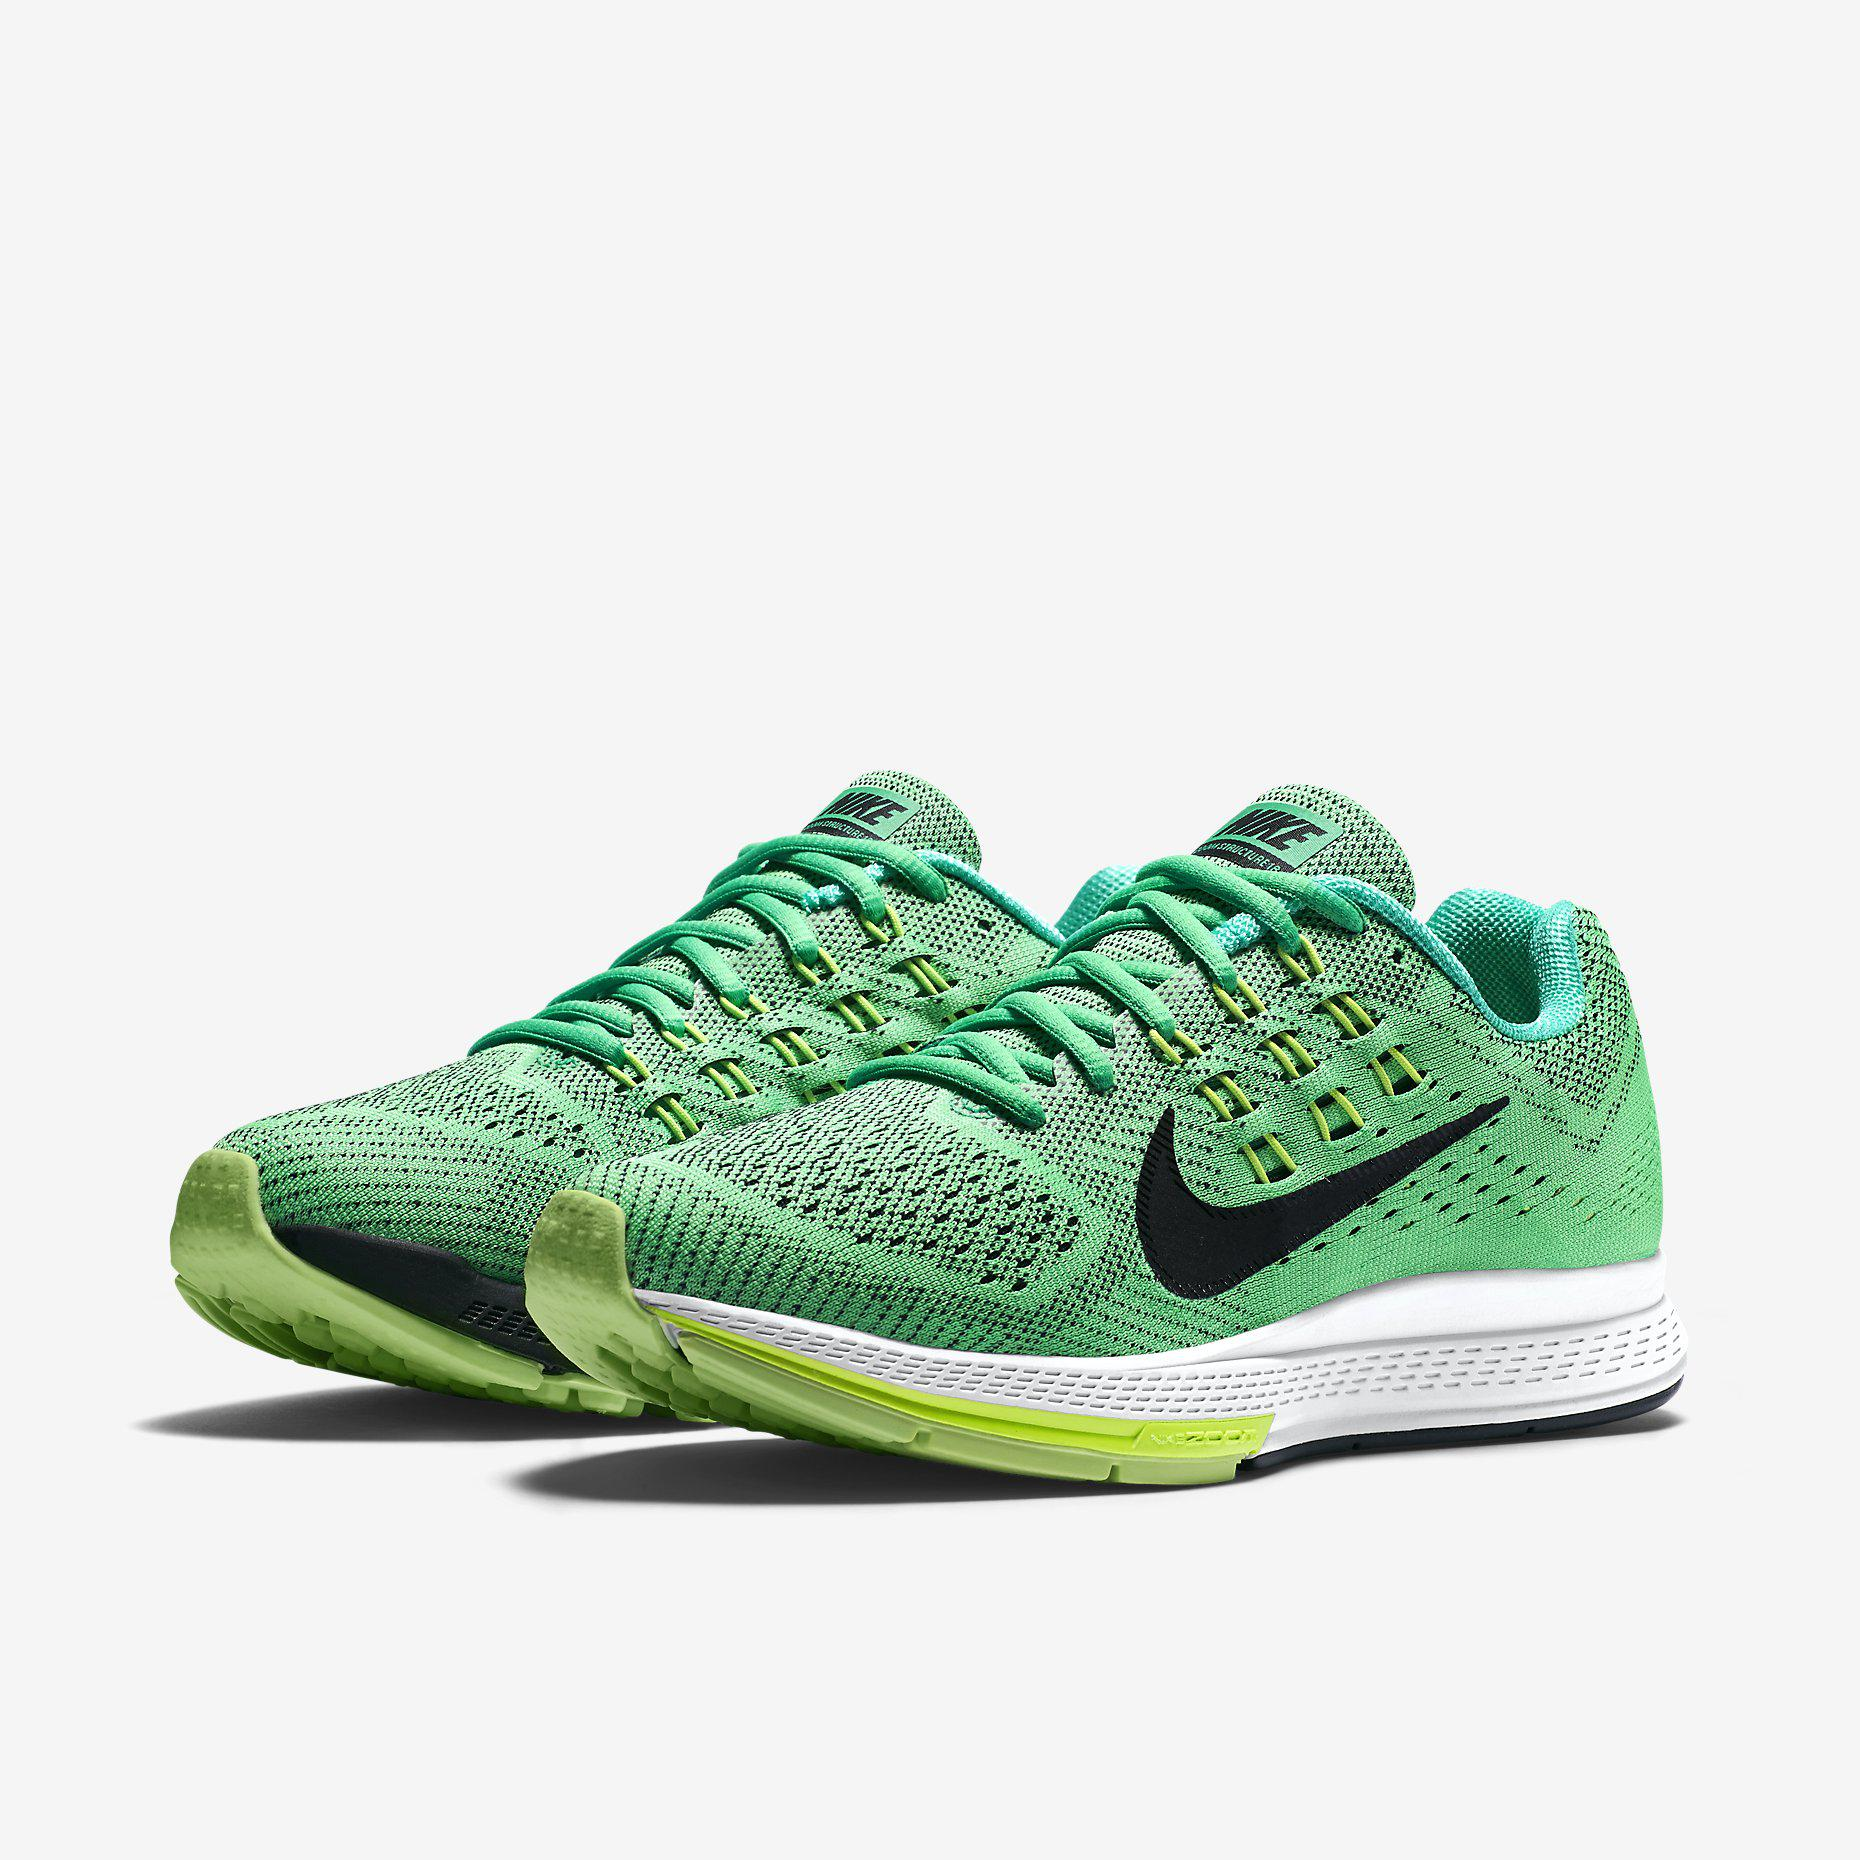 timeless design 3b3ae f5b1c Nike Womens Air Zoom Structure 18 Running Shoes - Menta Green